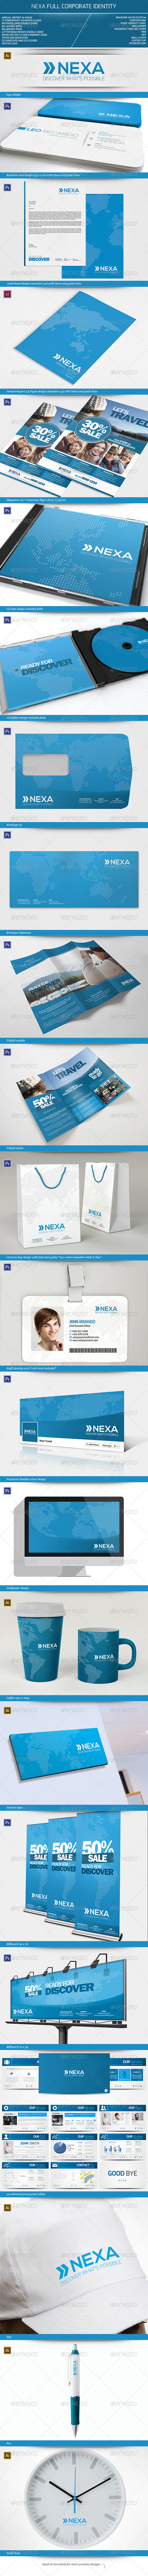 Nexa Full Corporate Identity - Stationery Print Templates